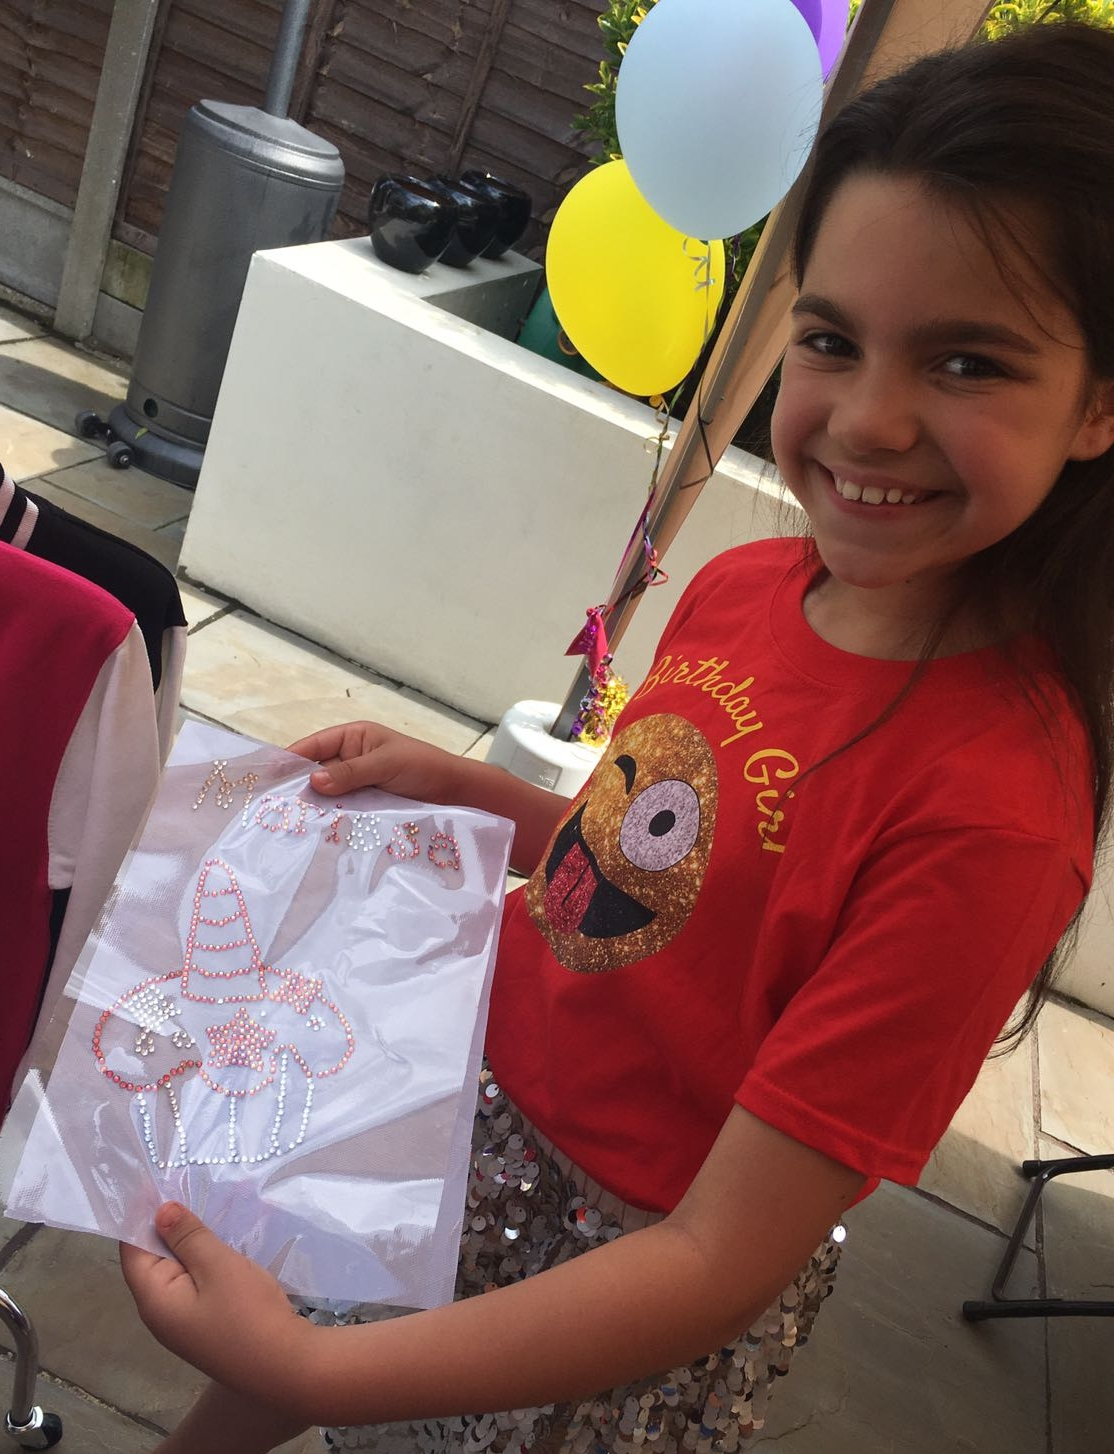 girl proudly showing her design